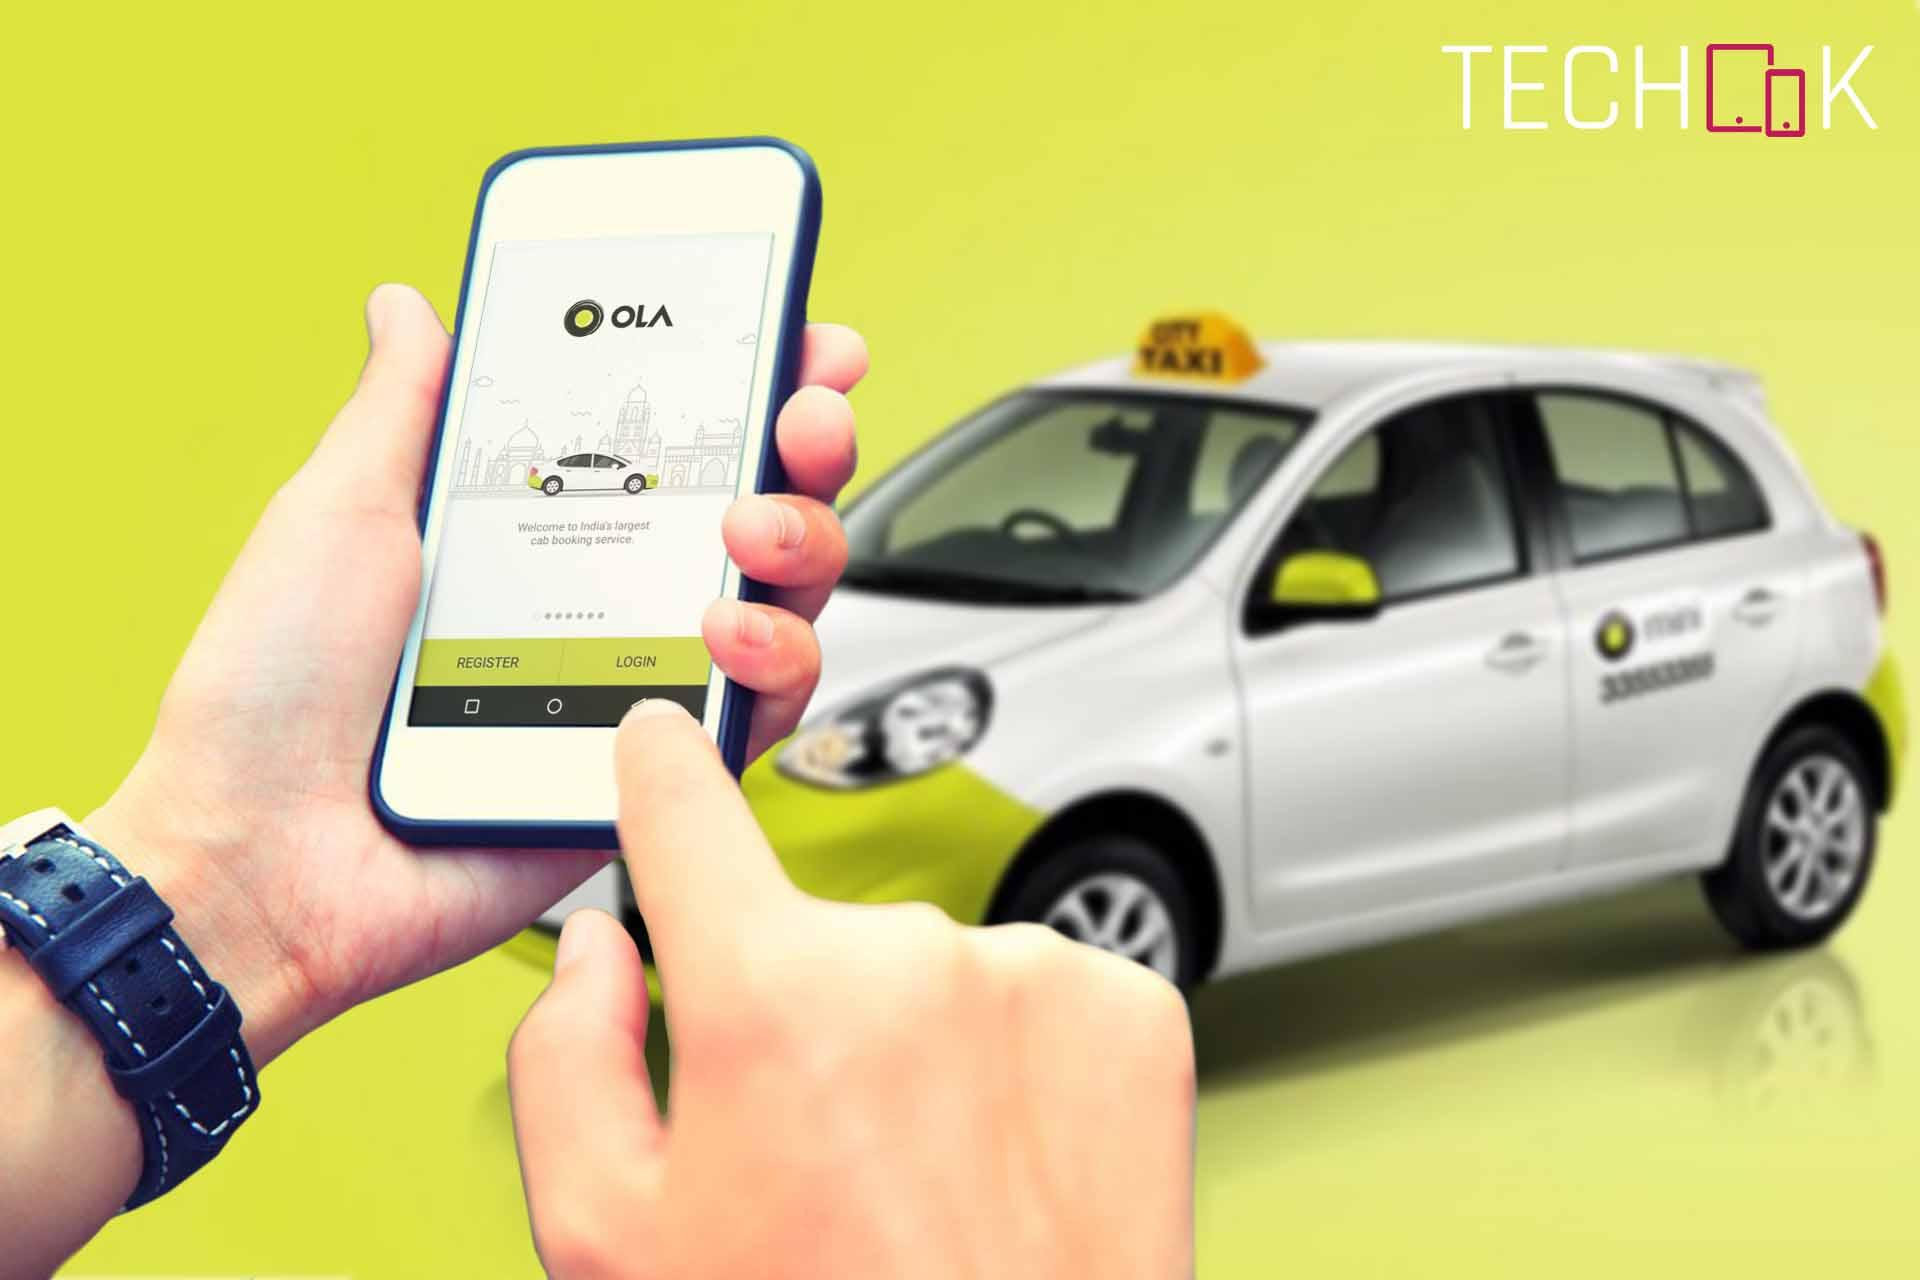 How To Book Ola Cab Ride In Advance For Later Date Technology News